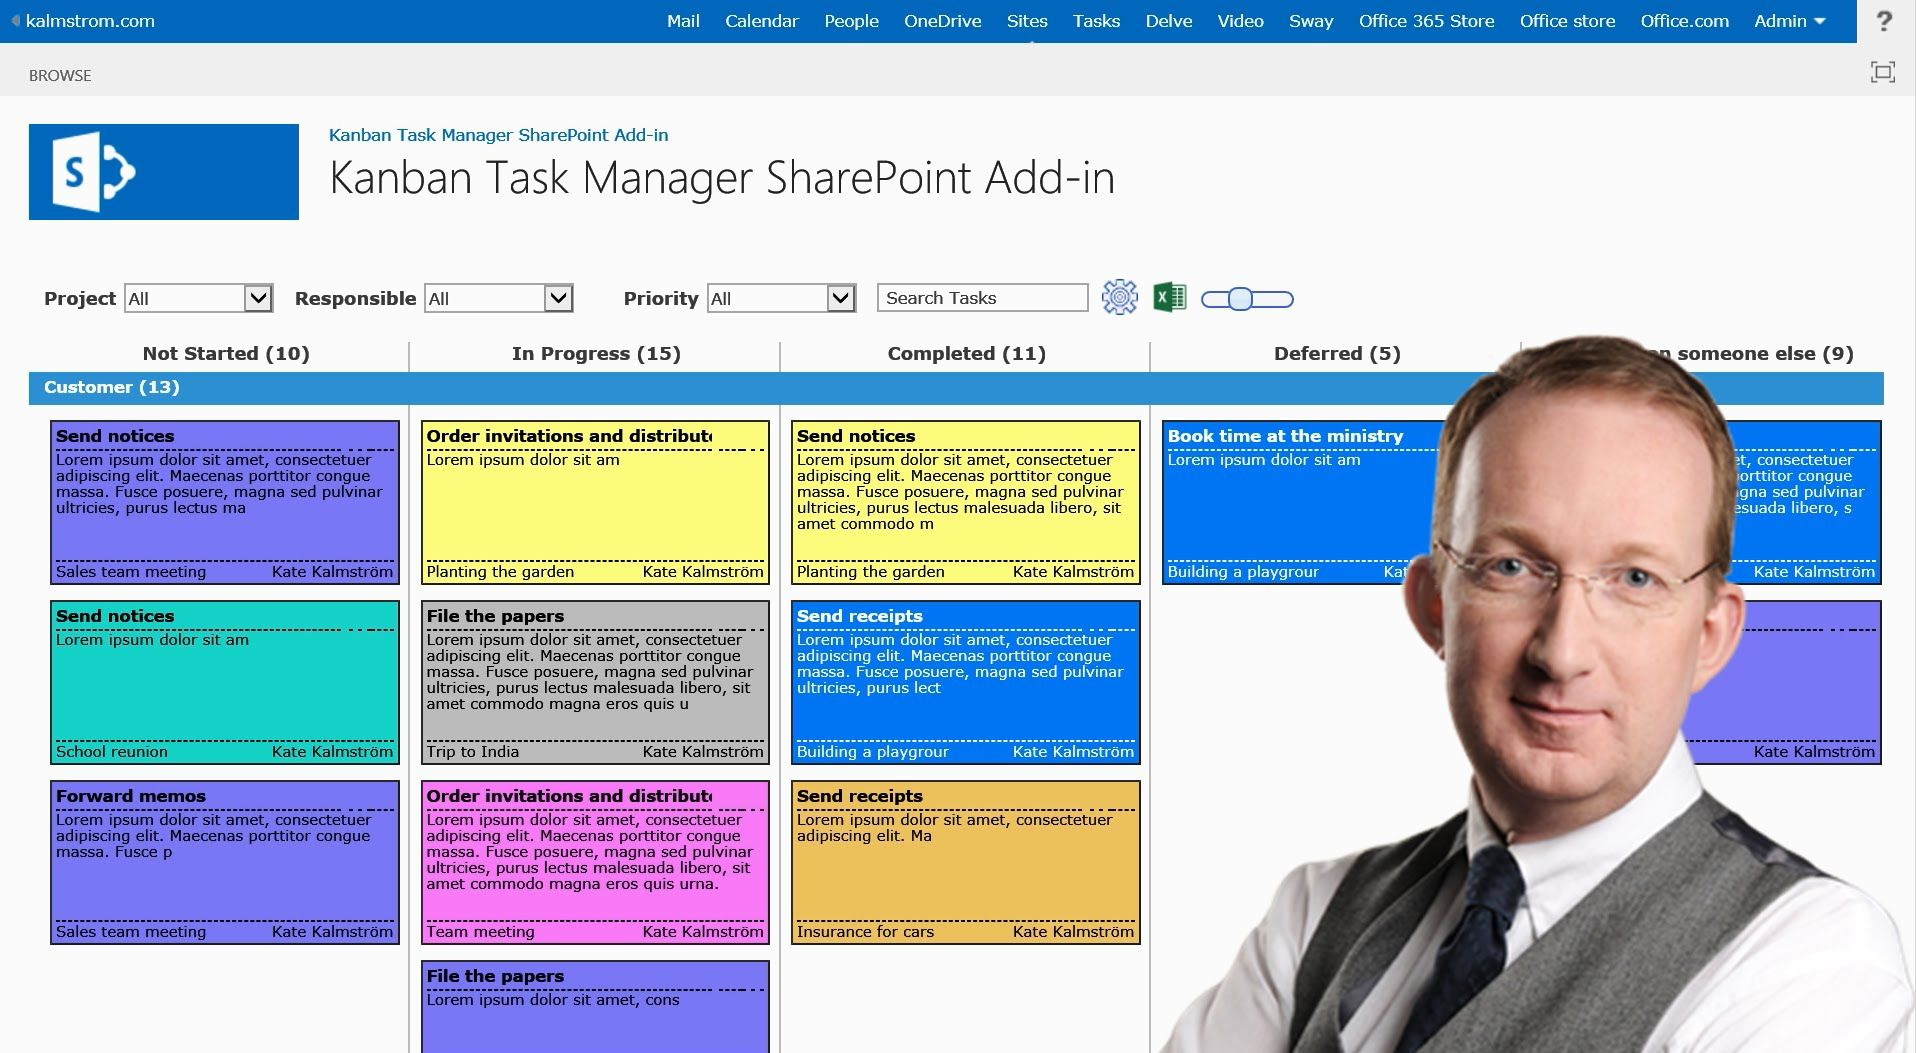 sharepoint 2013 product catalog site template - kanban task manager sharepoint add in add in version of